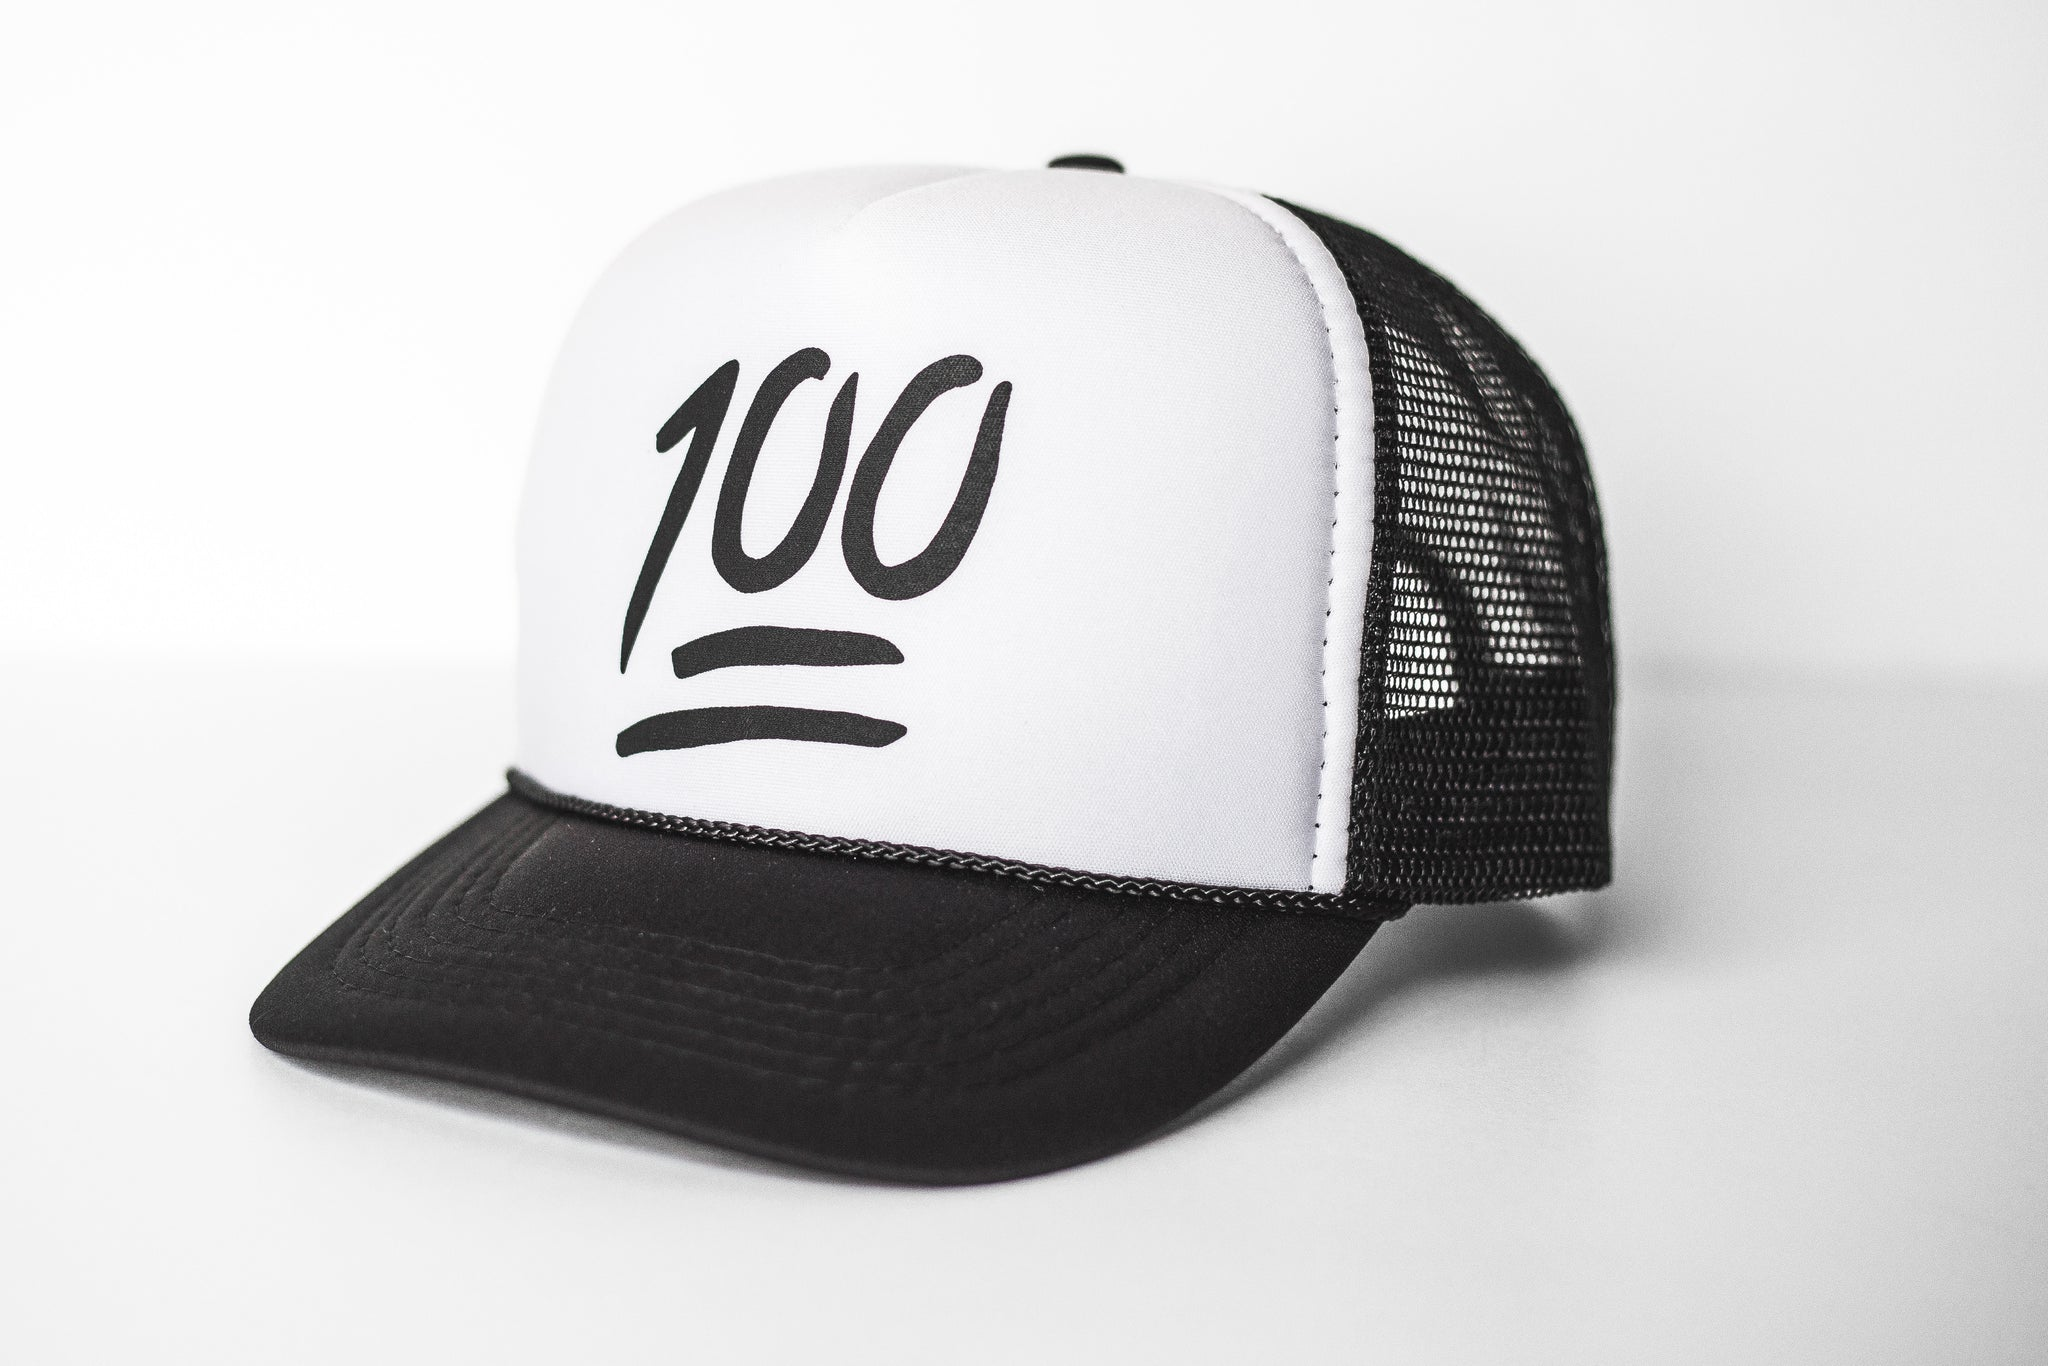 100 (white) - Snapback Trucker Hat